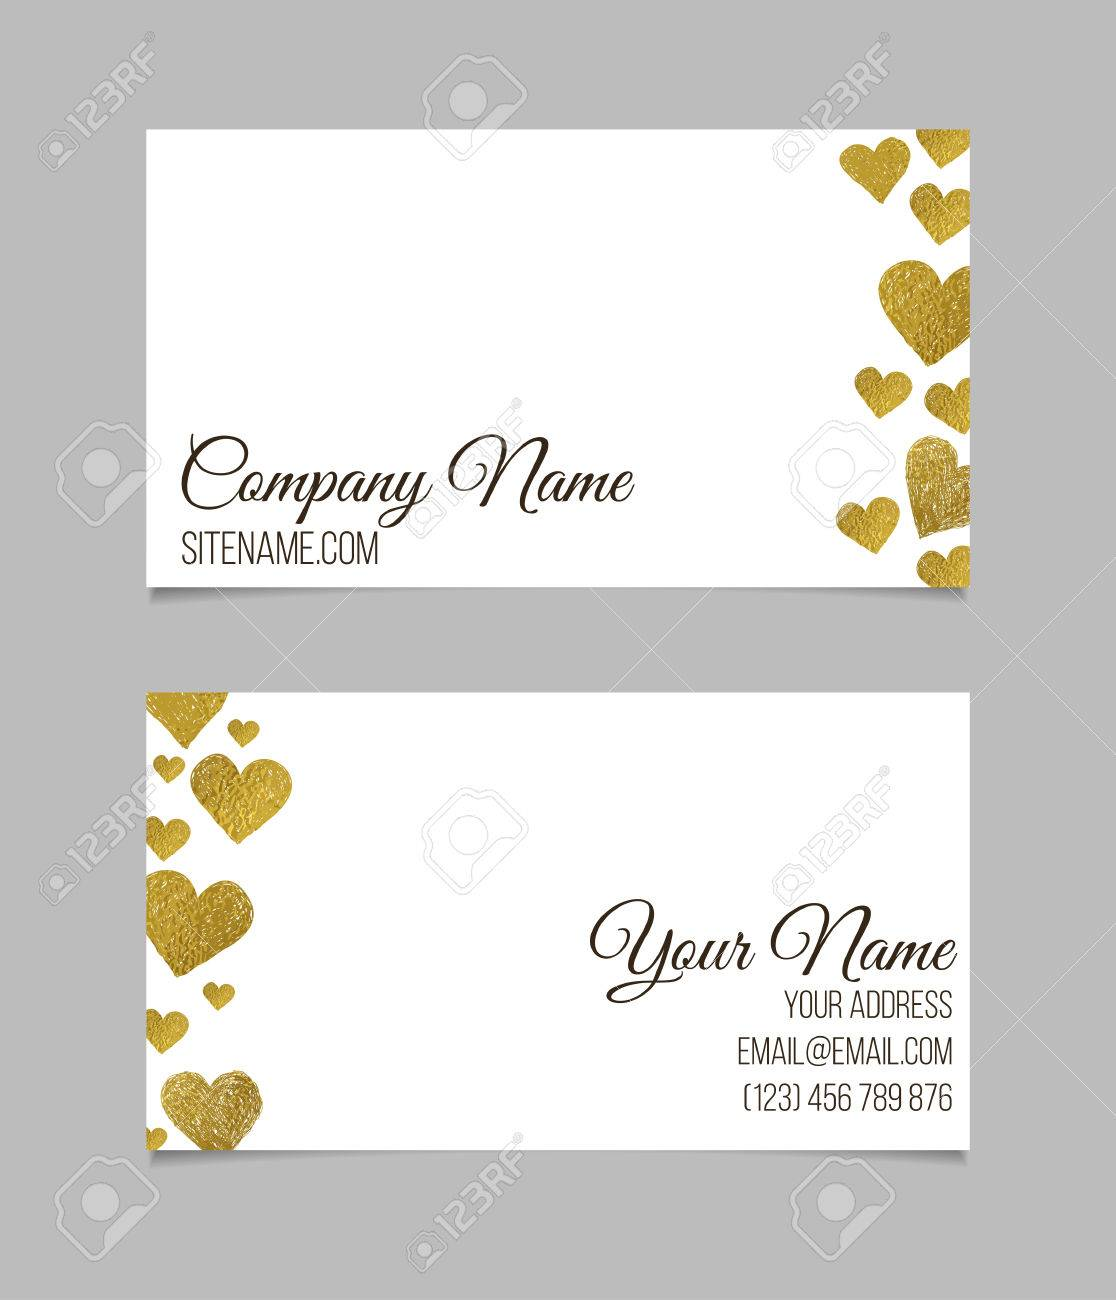 Business card template visiting card with golden foil heart business card template visiting card with golden foil heart shapes on white background double colourmoves